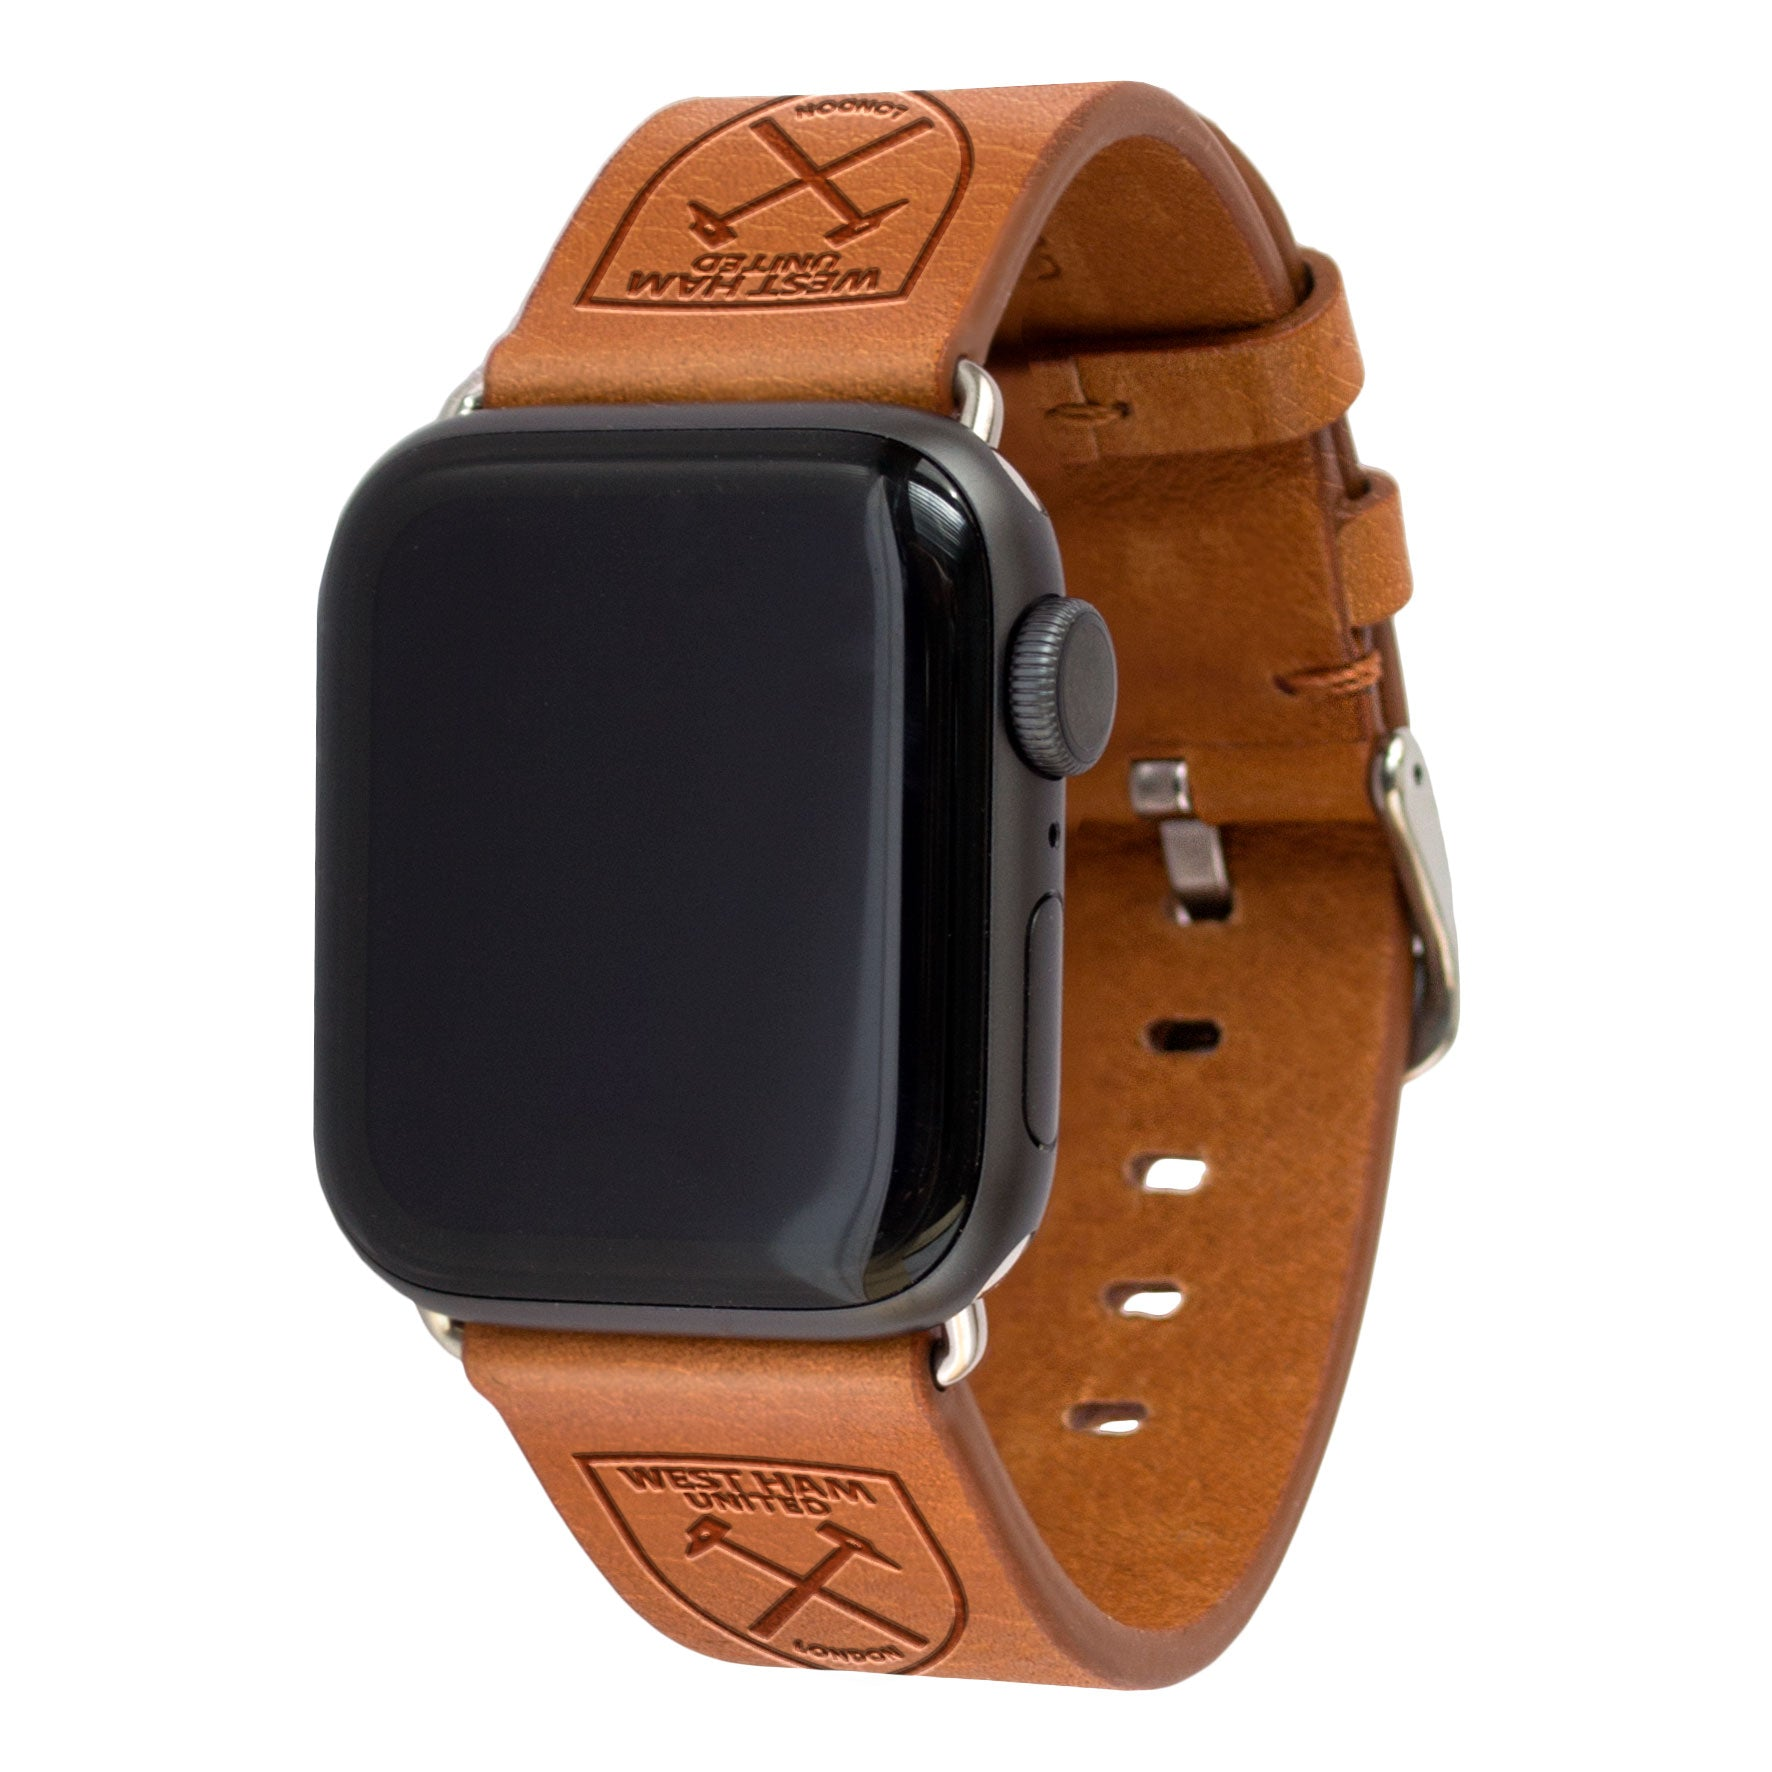 West Ham United FC Leather Apple Watch Band